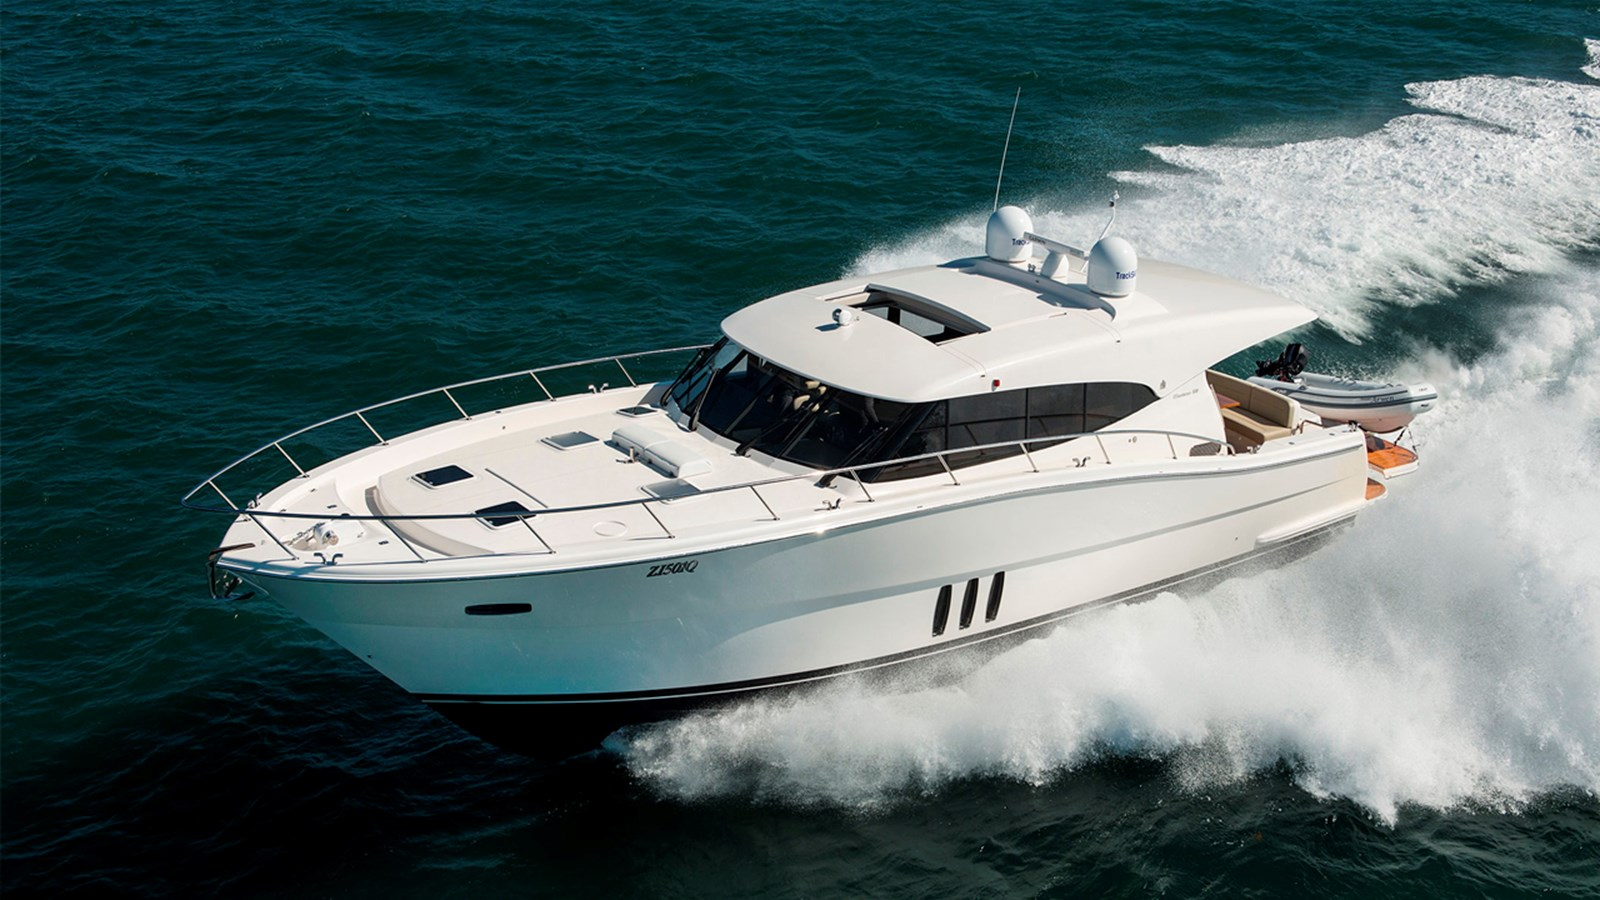 2019 MARITIMO S59 For Sale